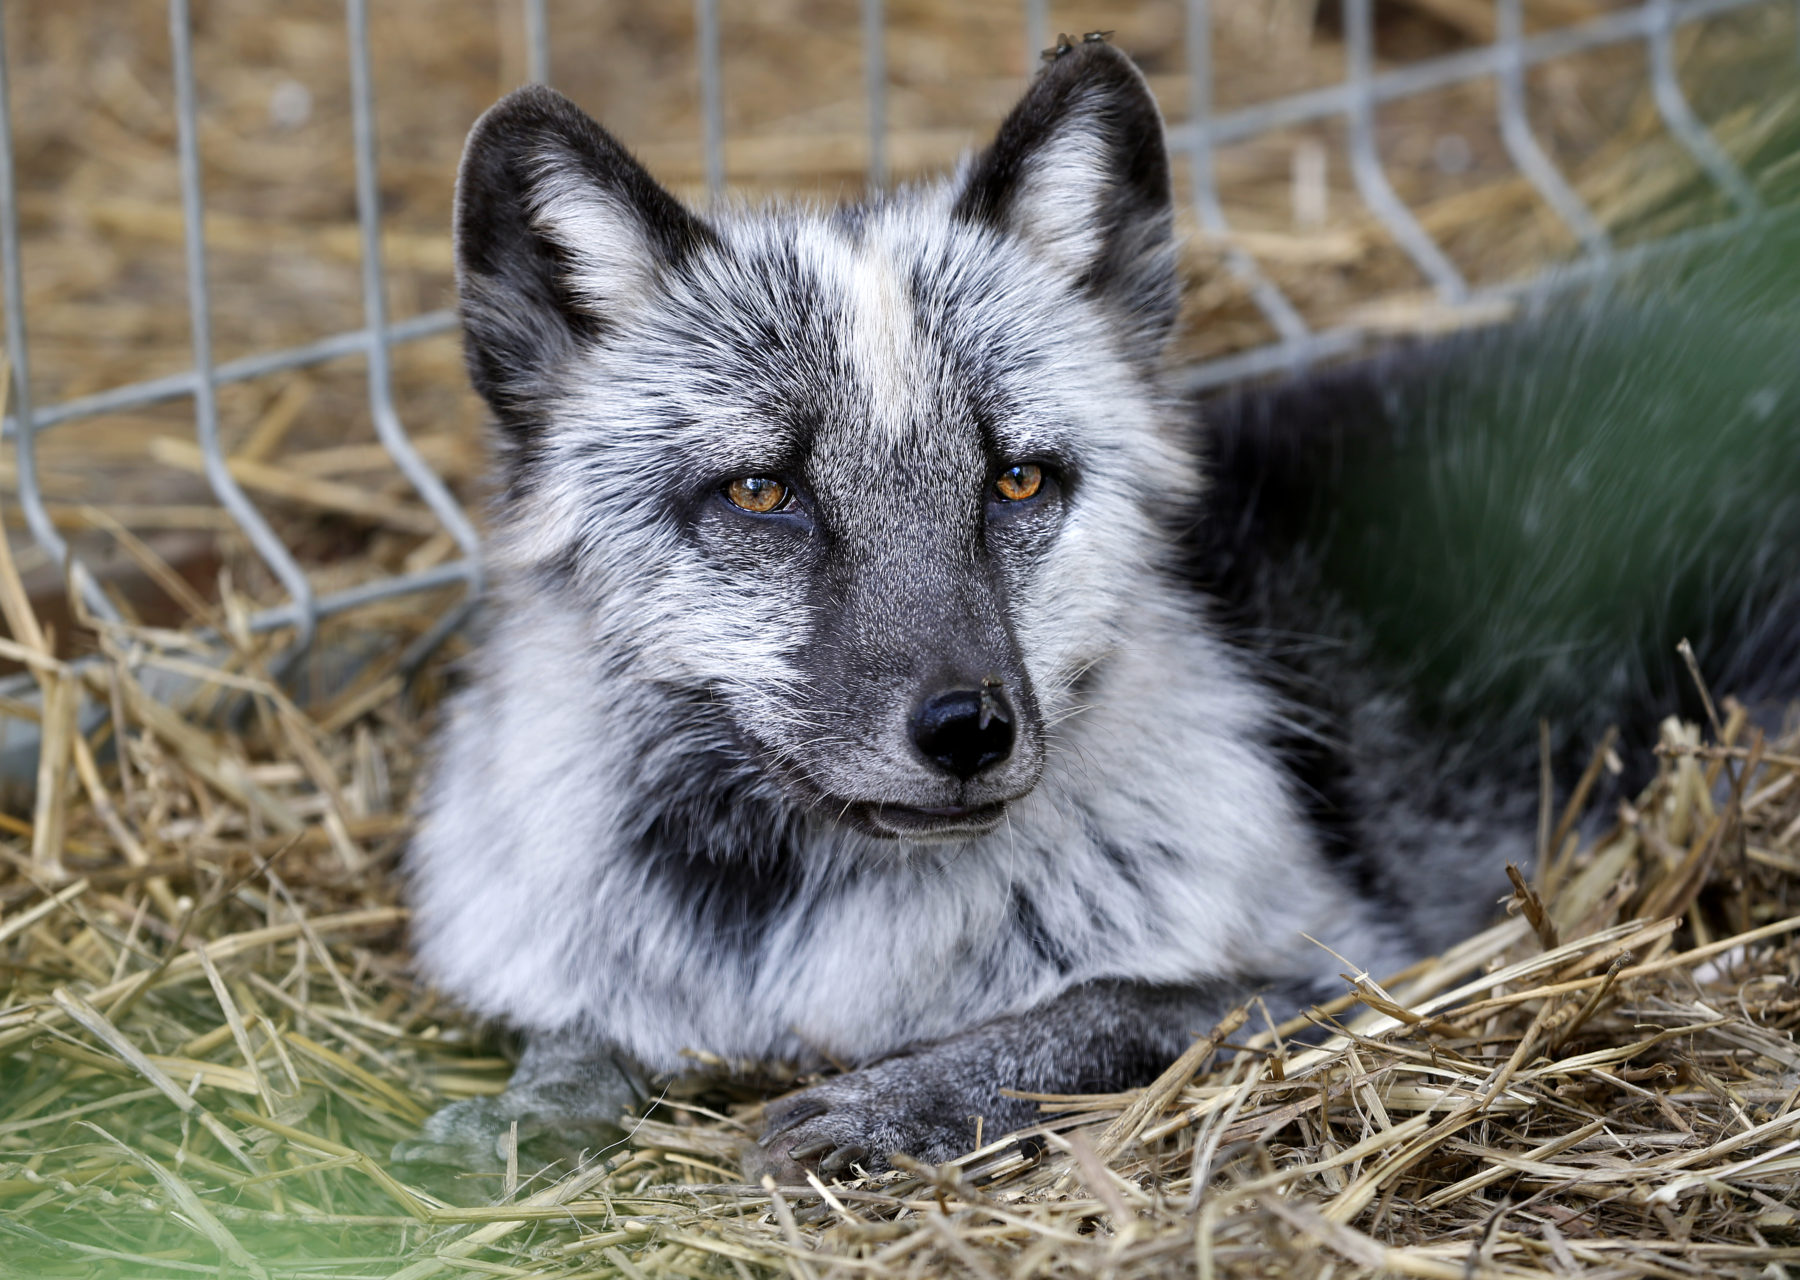 FOXES RESCUED FROM A FUR FARM